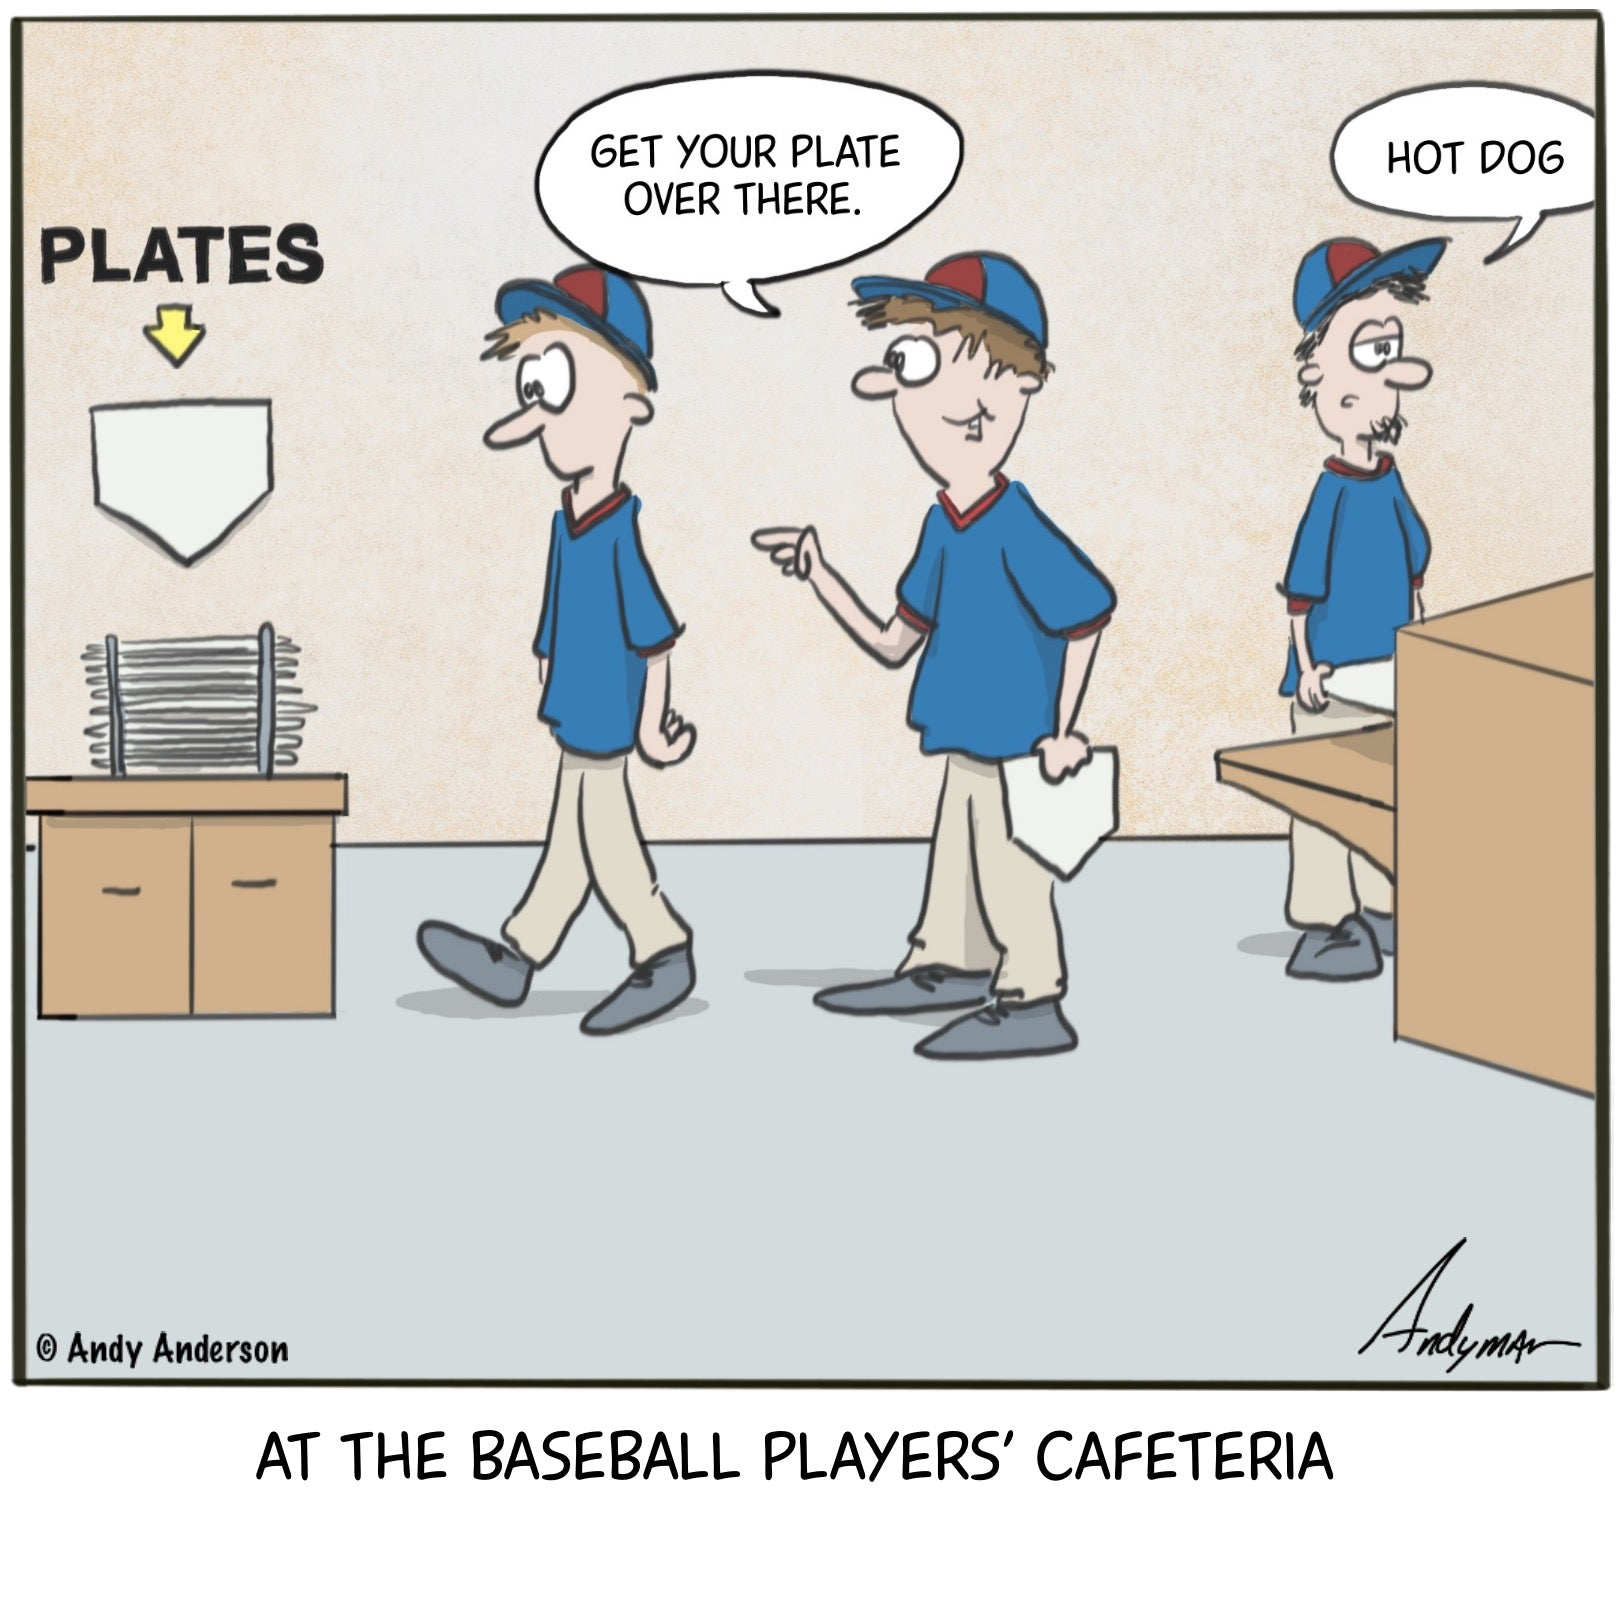 At the baseball players' cafeteria cartoon by Andy Anderson